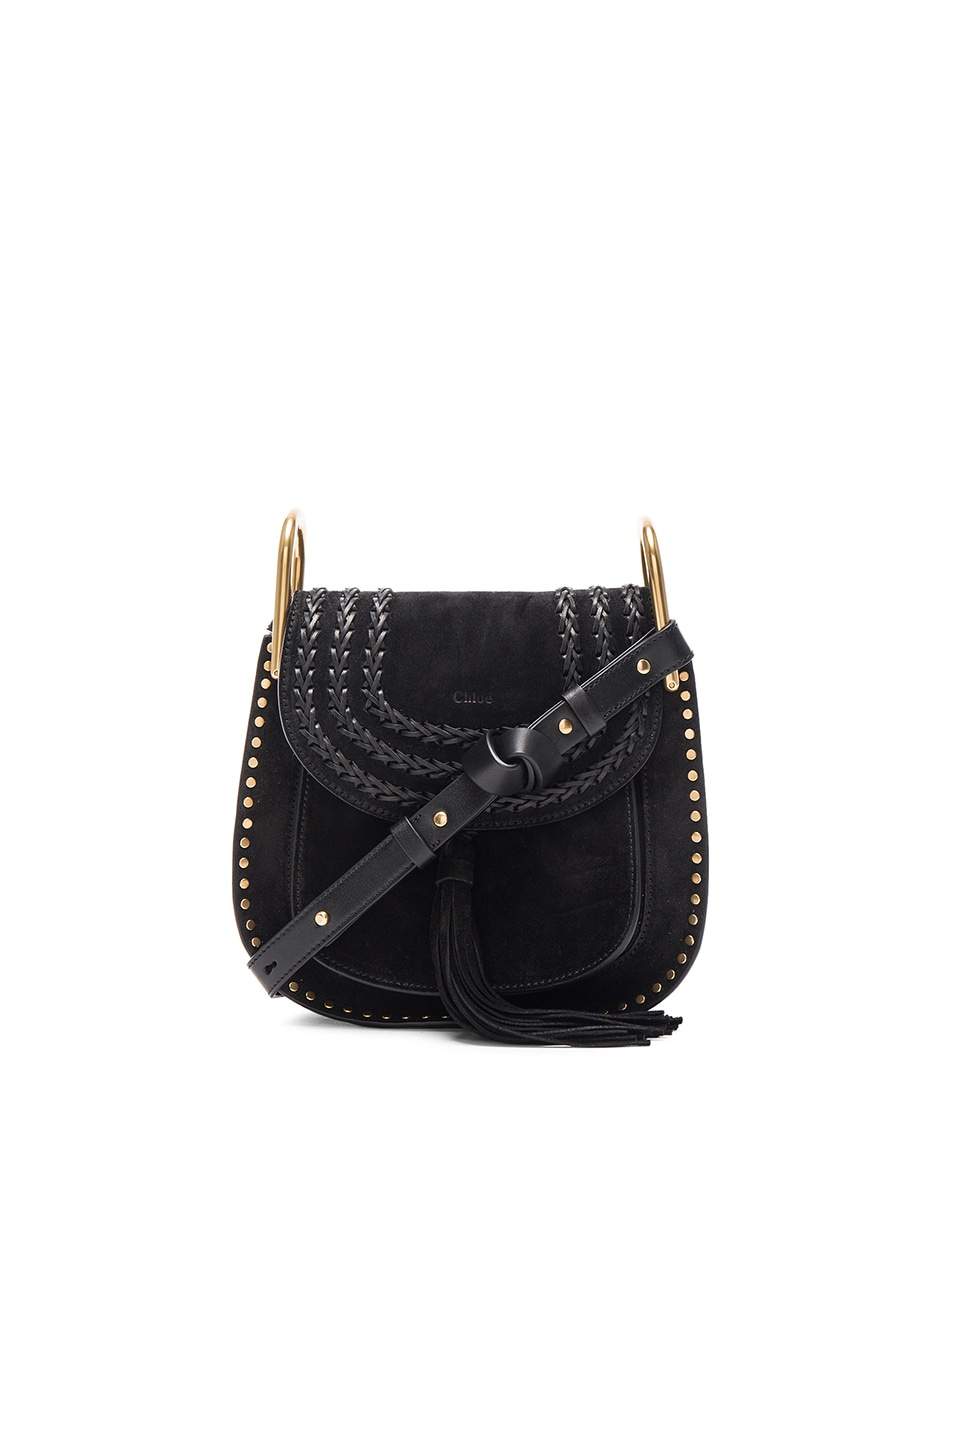 Image 1 of Chloe Small Suede Hudson Bag in Black